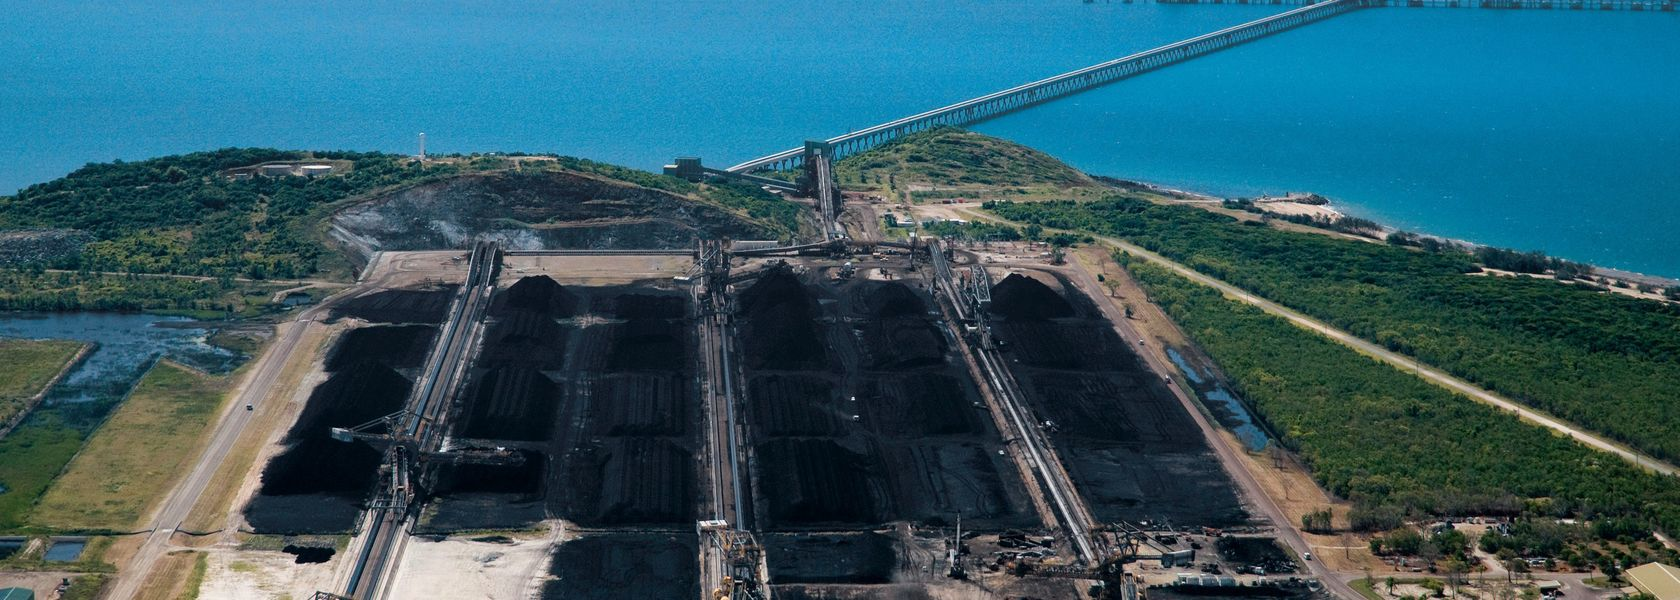 Palaszczuk recognises coal as one of Qld's great strengths